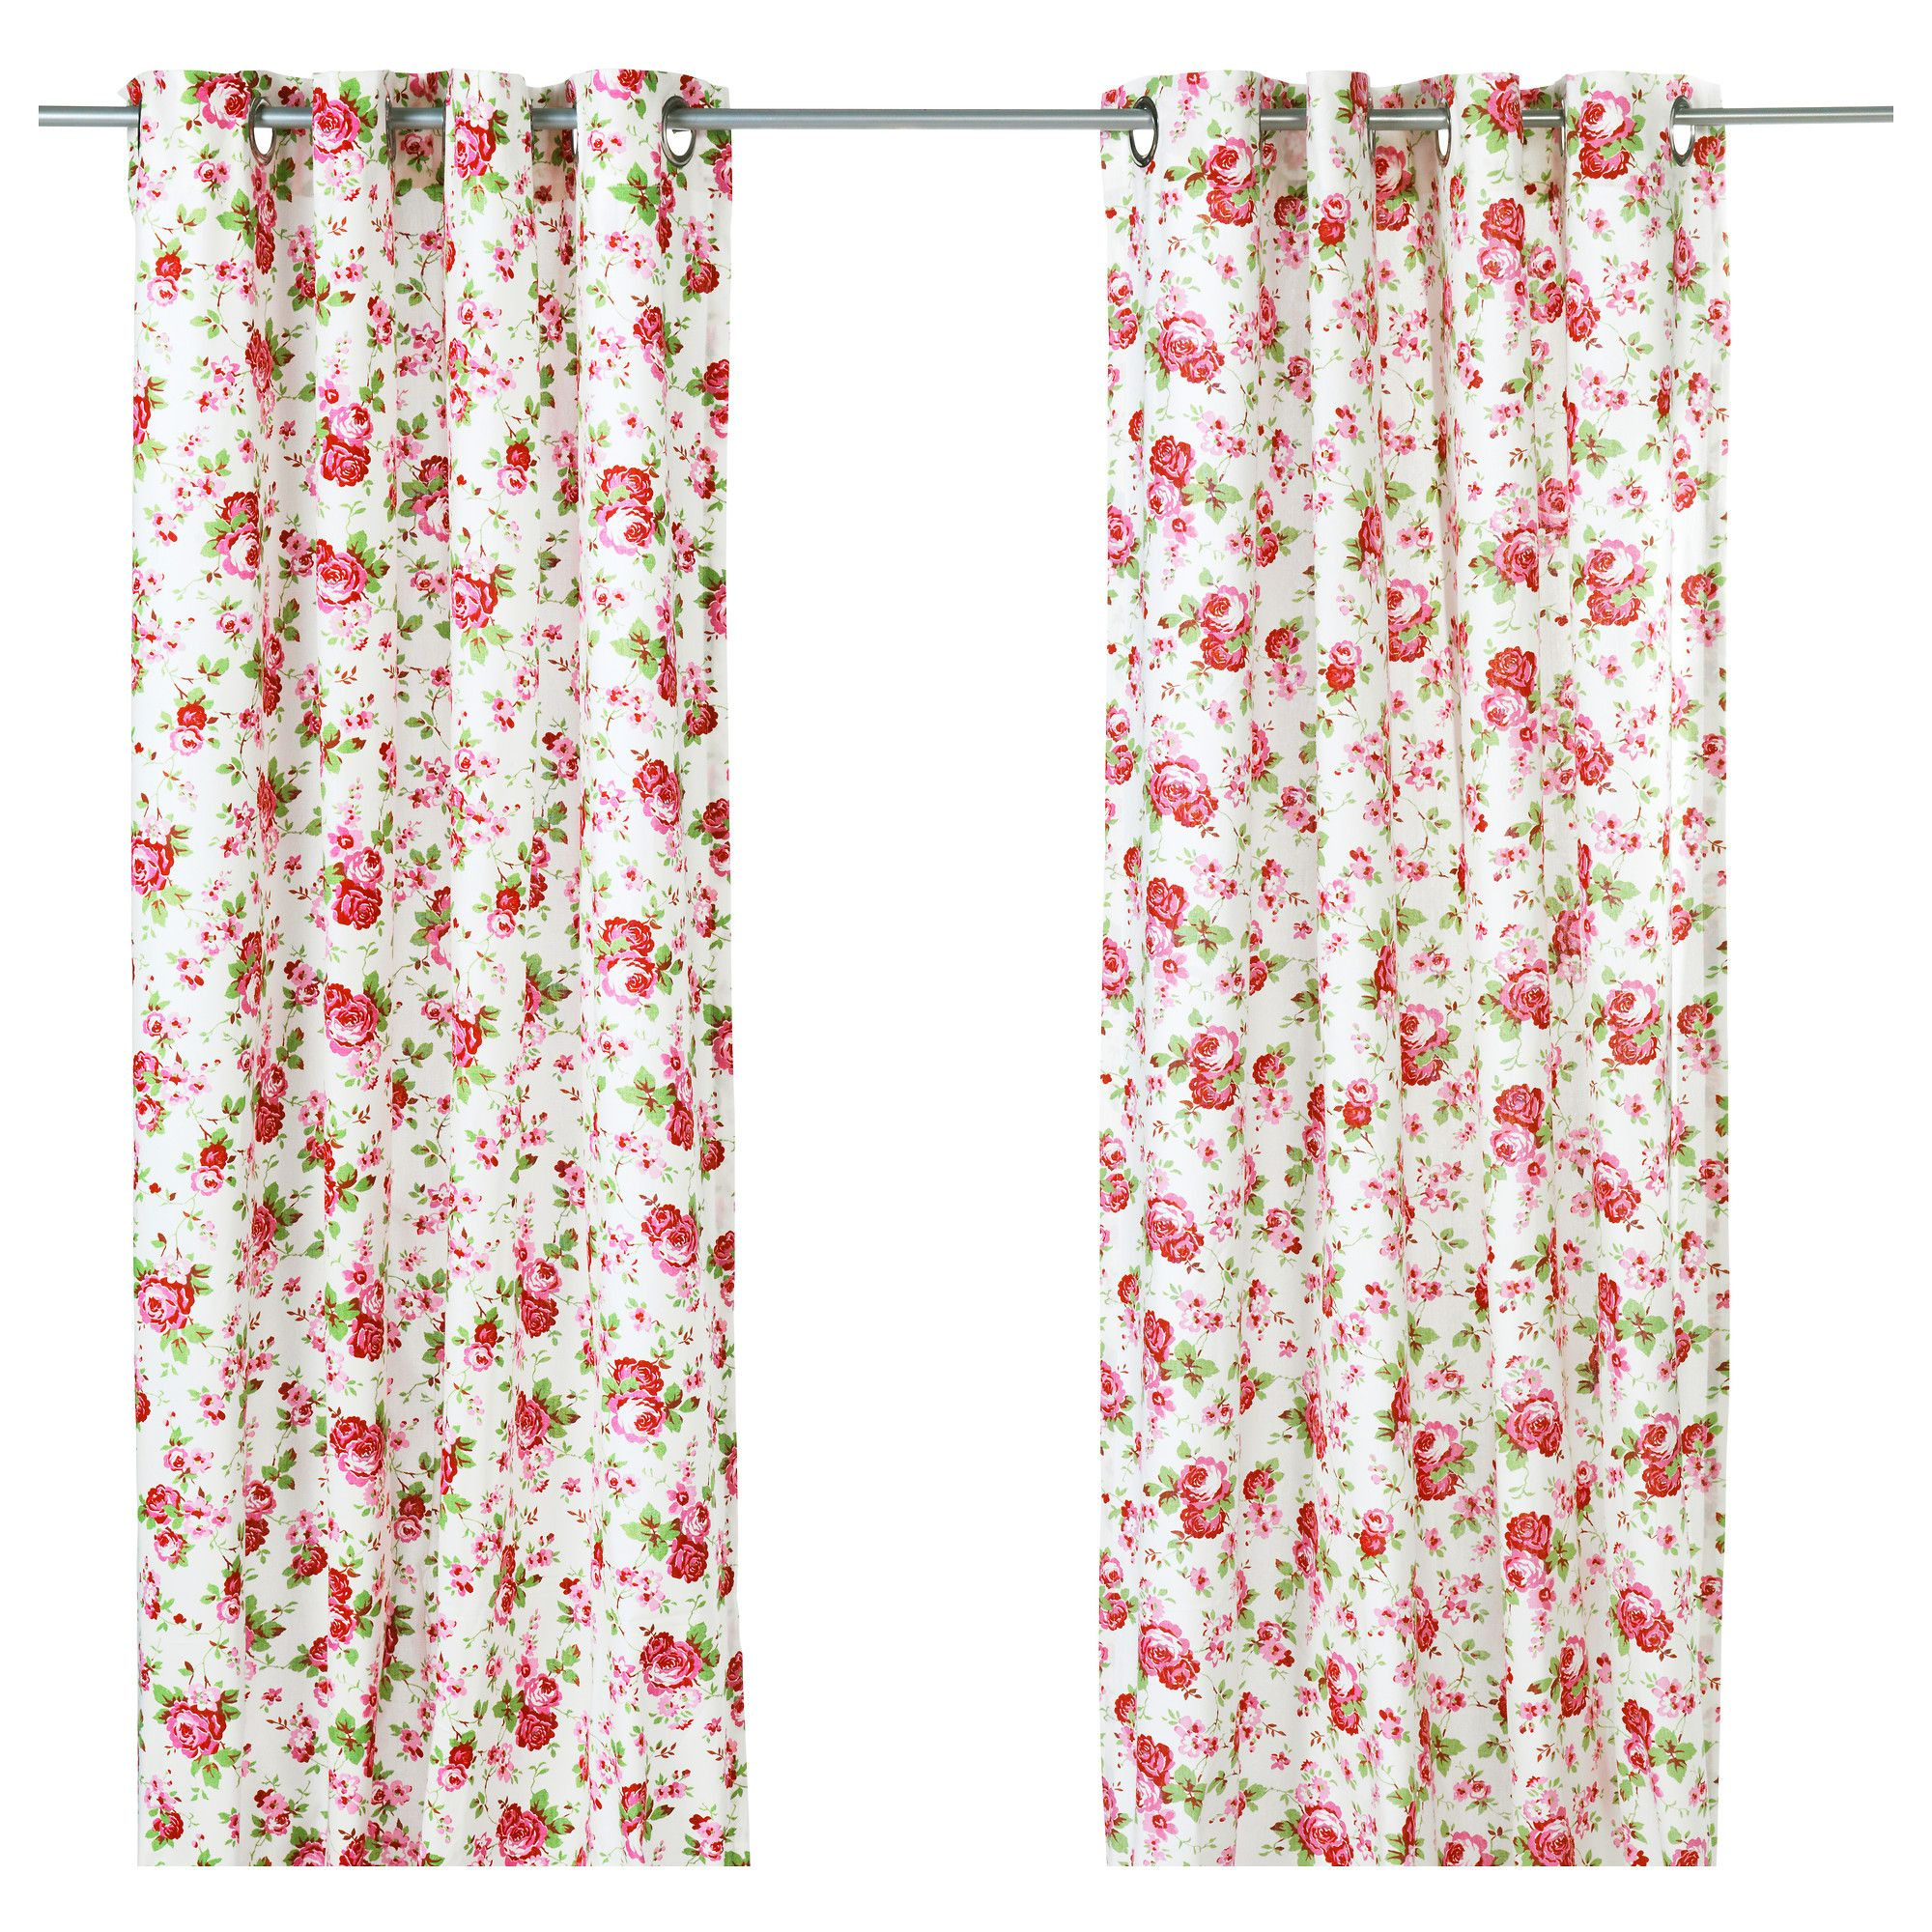 ROSALI Curtains, 1 Pair - IKEA